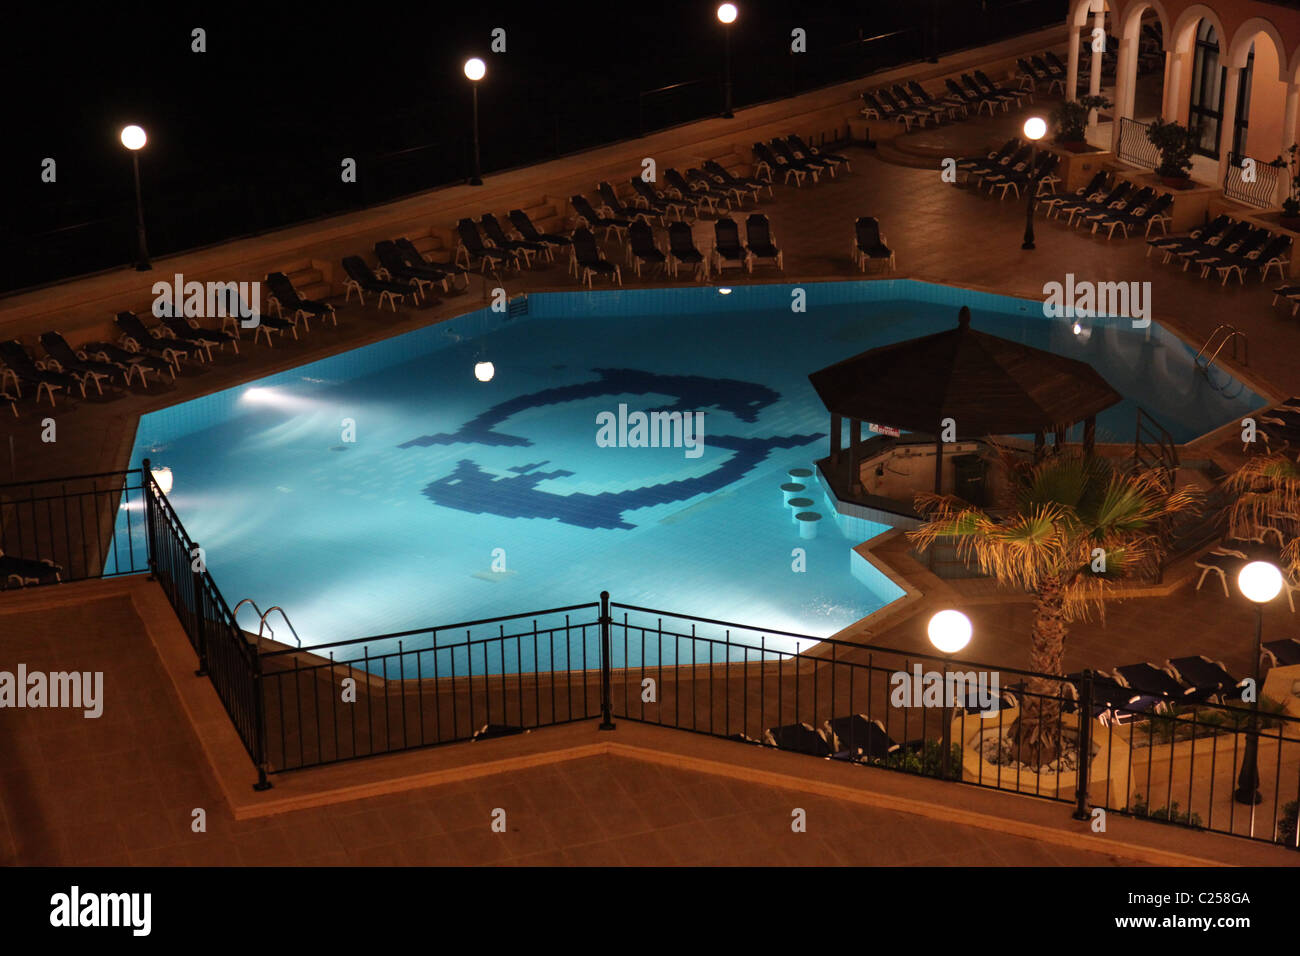 At dolphins night stock photos at dolphins night stock images alamy for Late night swimming pools london